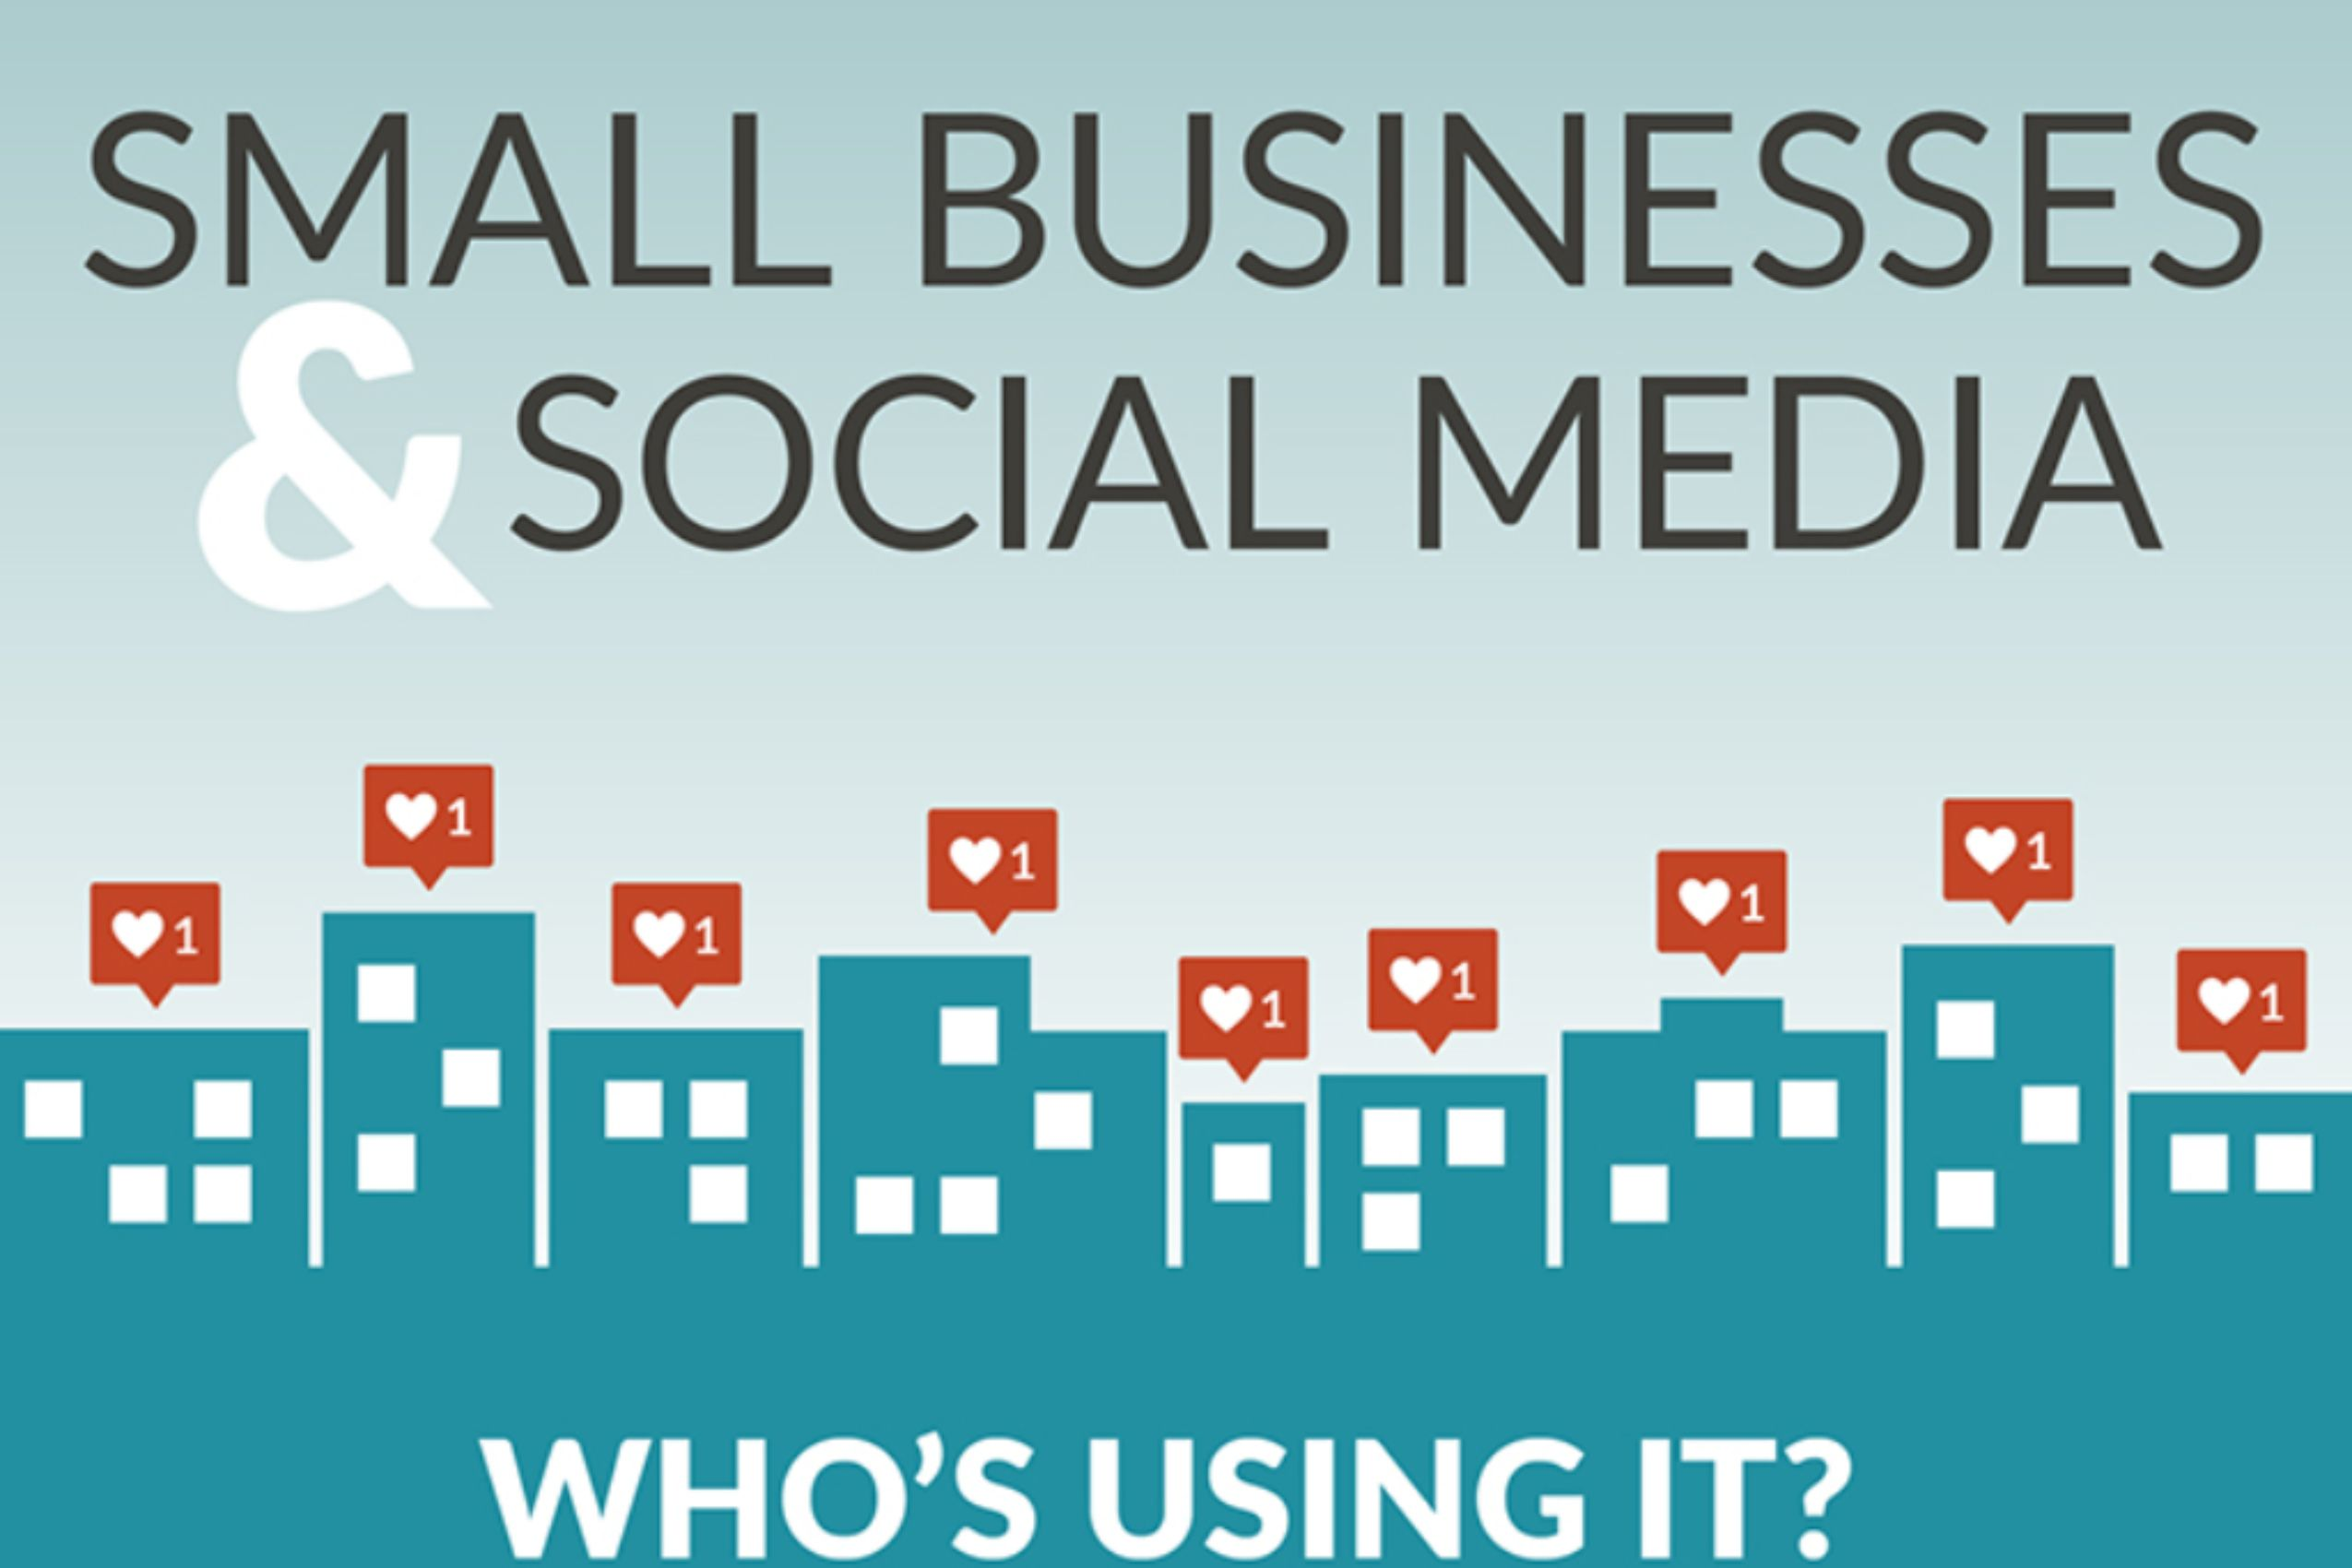 Small Businesses Social Media Who S Using It Infographic Small Business Social Media Social Media Business Social Media